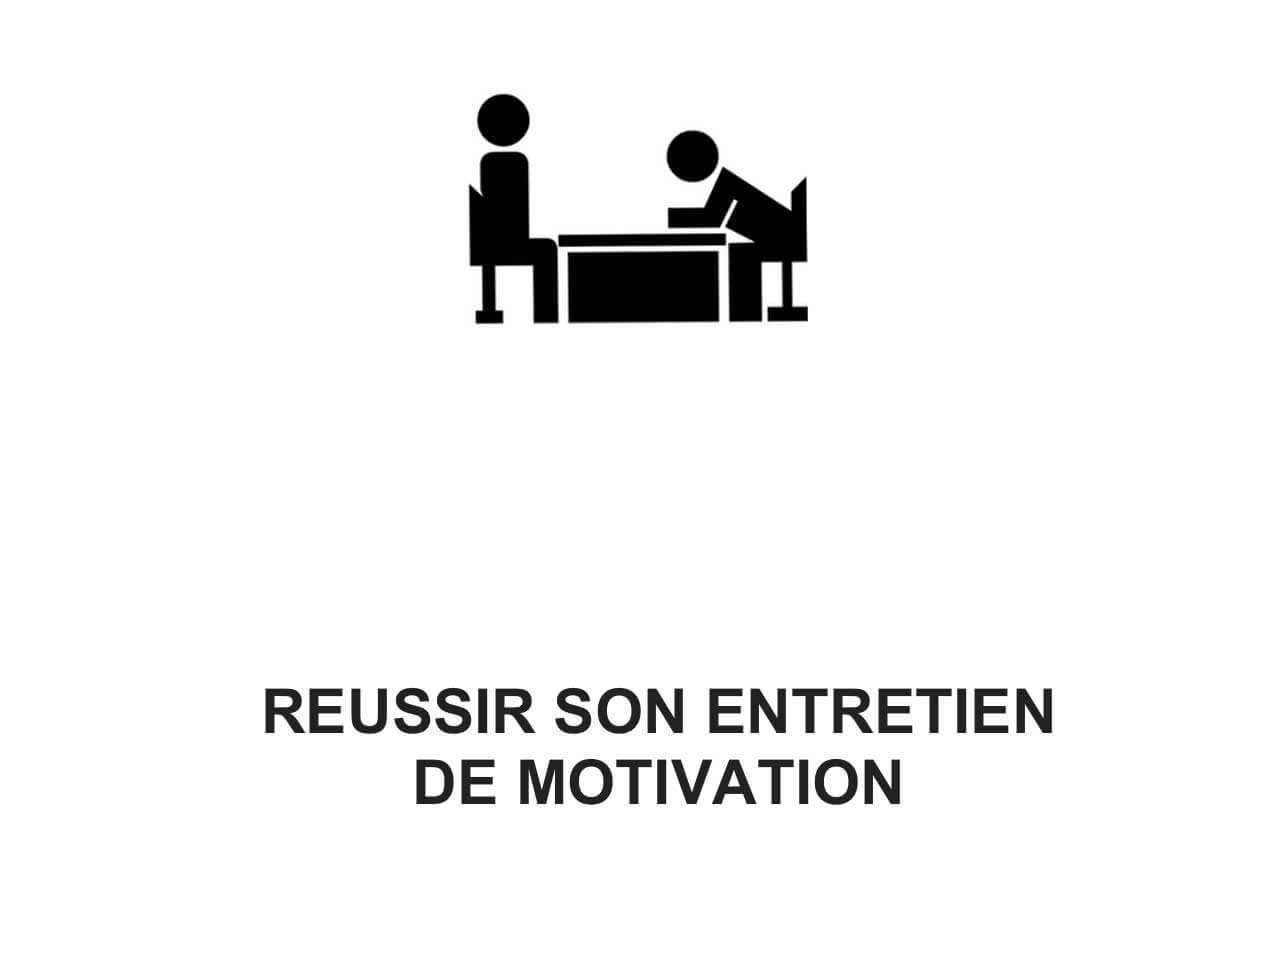 jobtimise-reussir-son-entretien-de-motivation